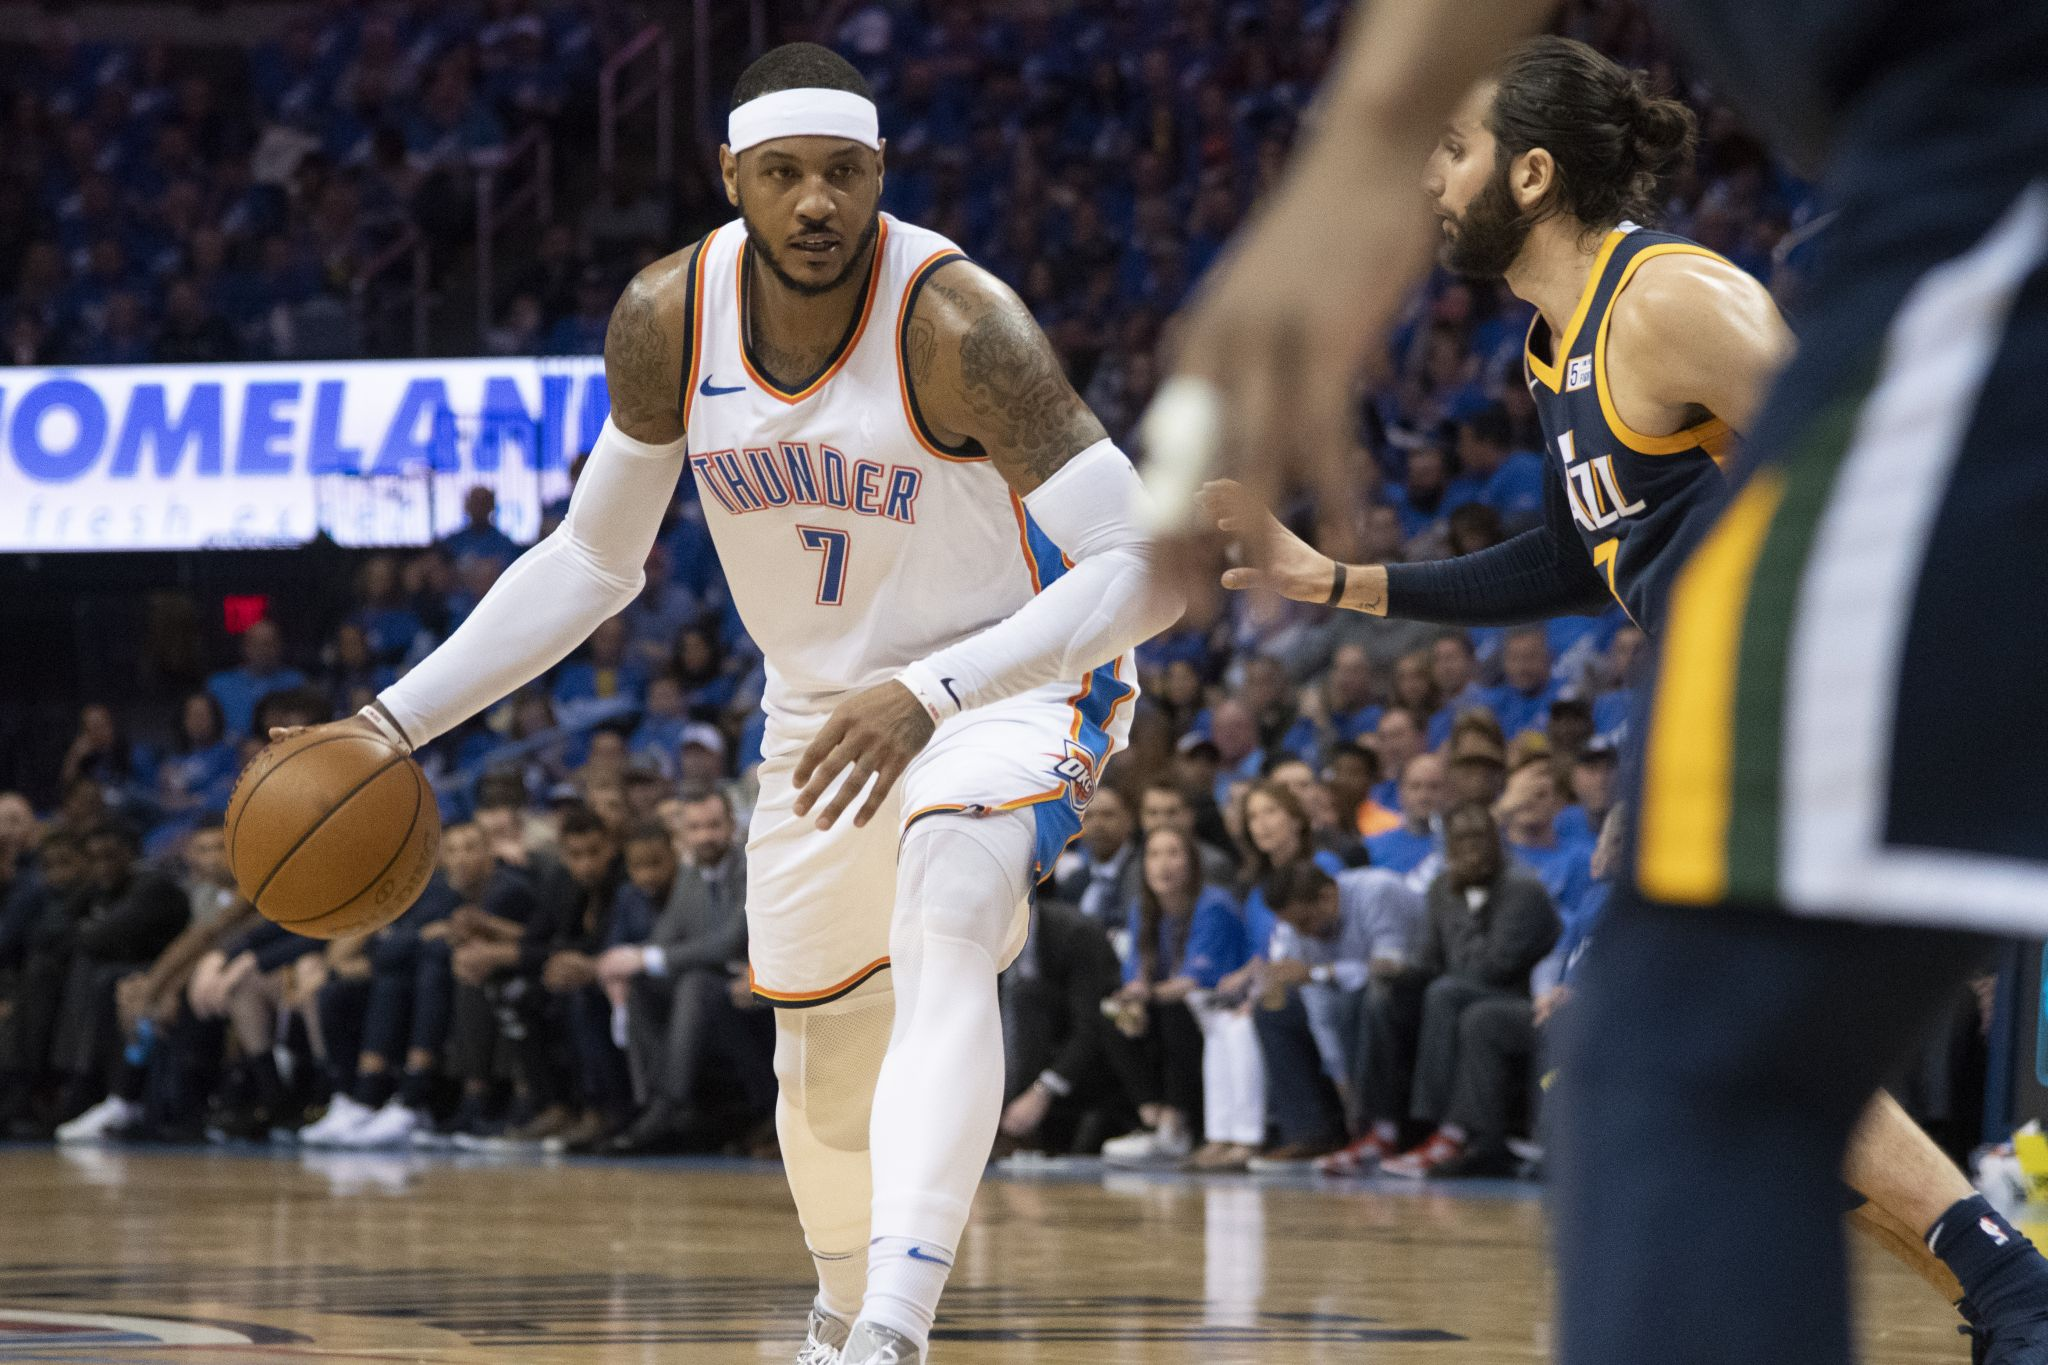 Rockets to land Carmelo Antony after pursuing him for years -  HoustonChronicle.com 032318abb